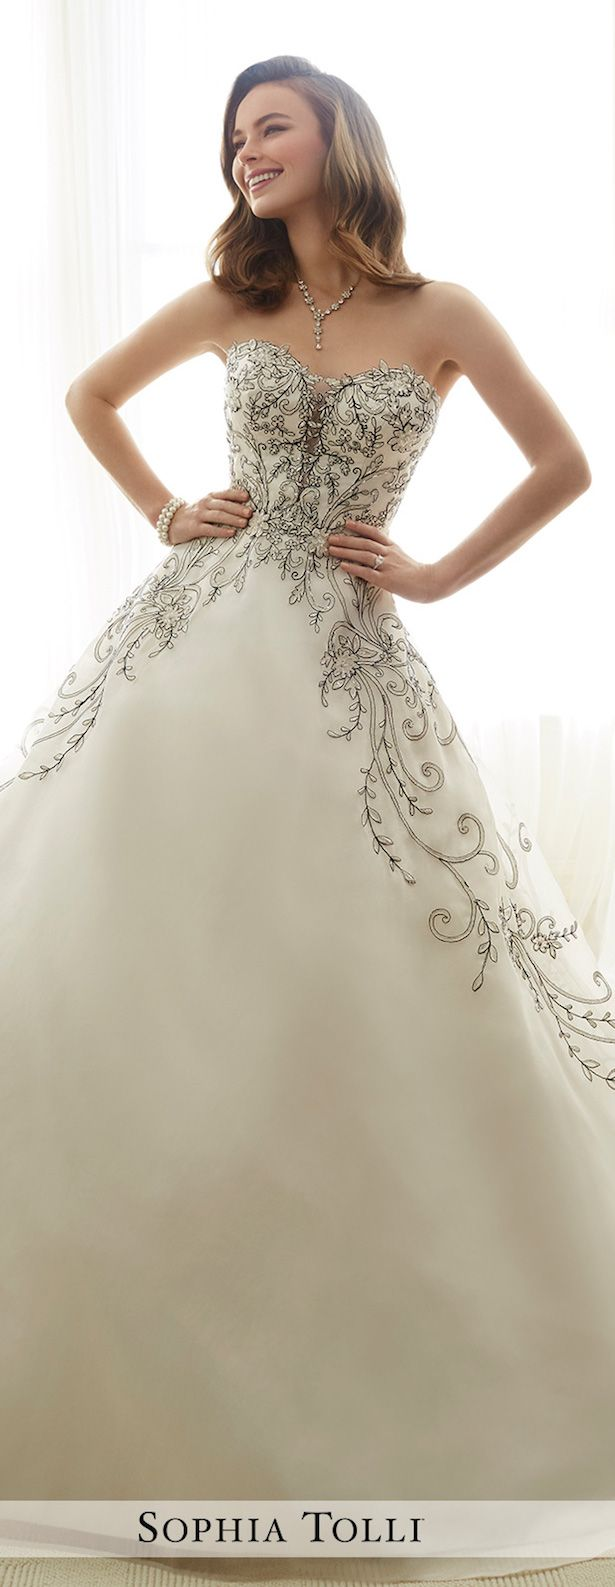 3526 best karima images on Pinterest | Wedding frocks, Homecoming ...